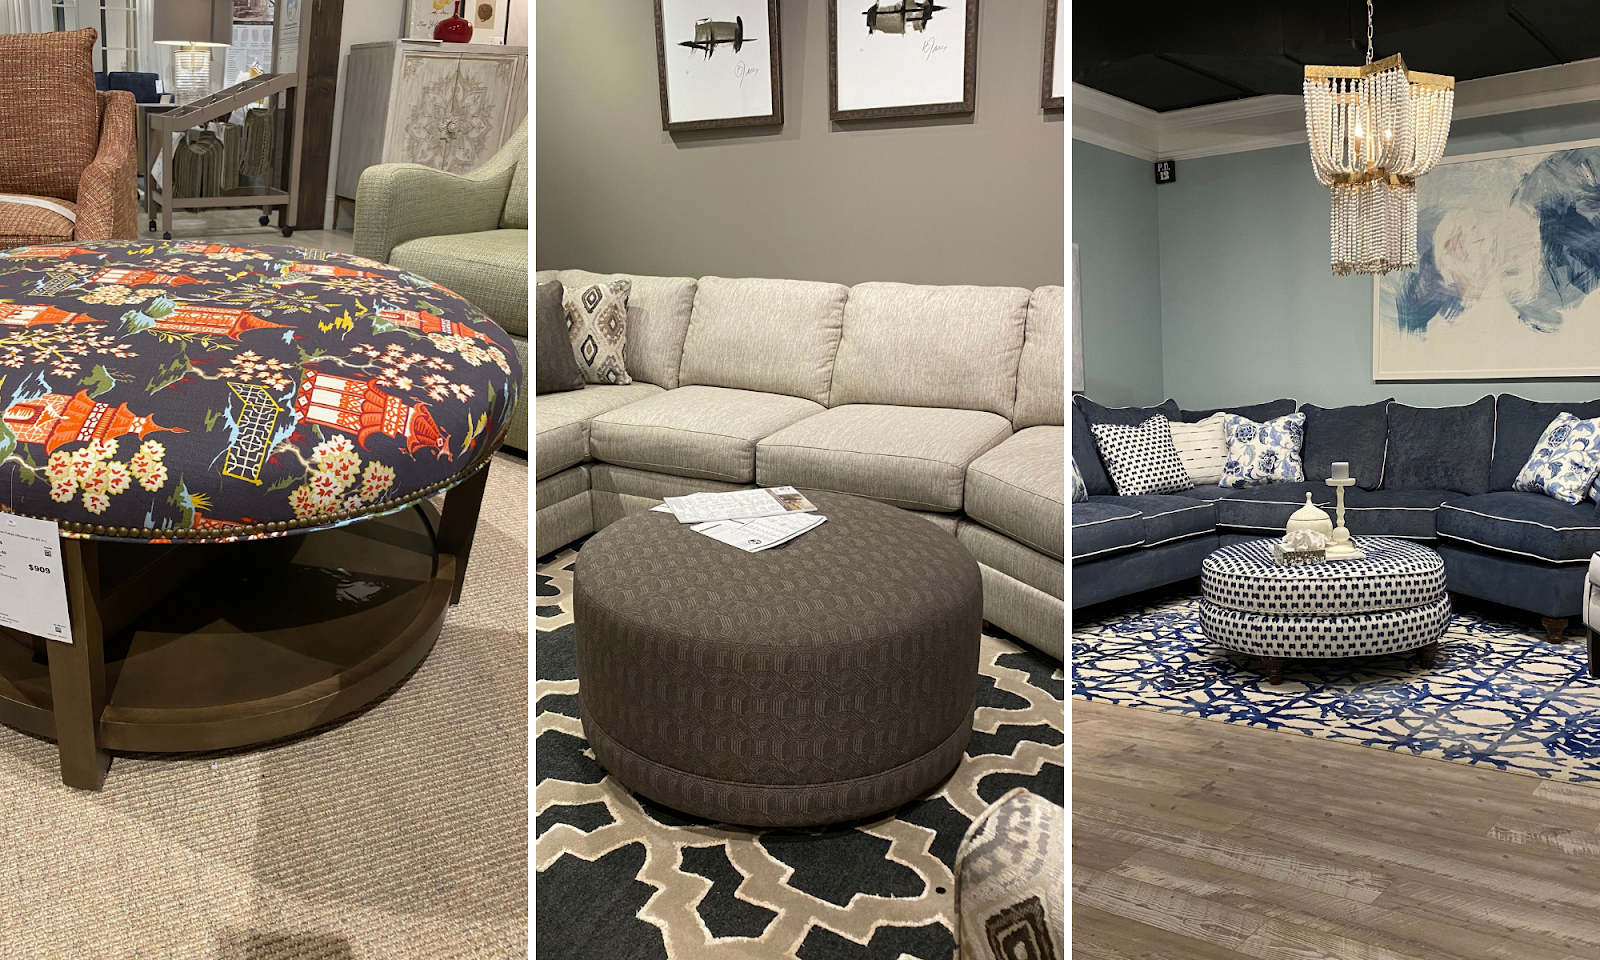 superior-construction-lebanon-tn-select-durable-fabrics-upholstered-ottomans-in-various-shapes-and-sizes